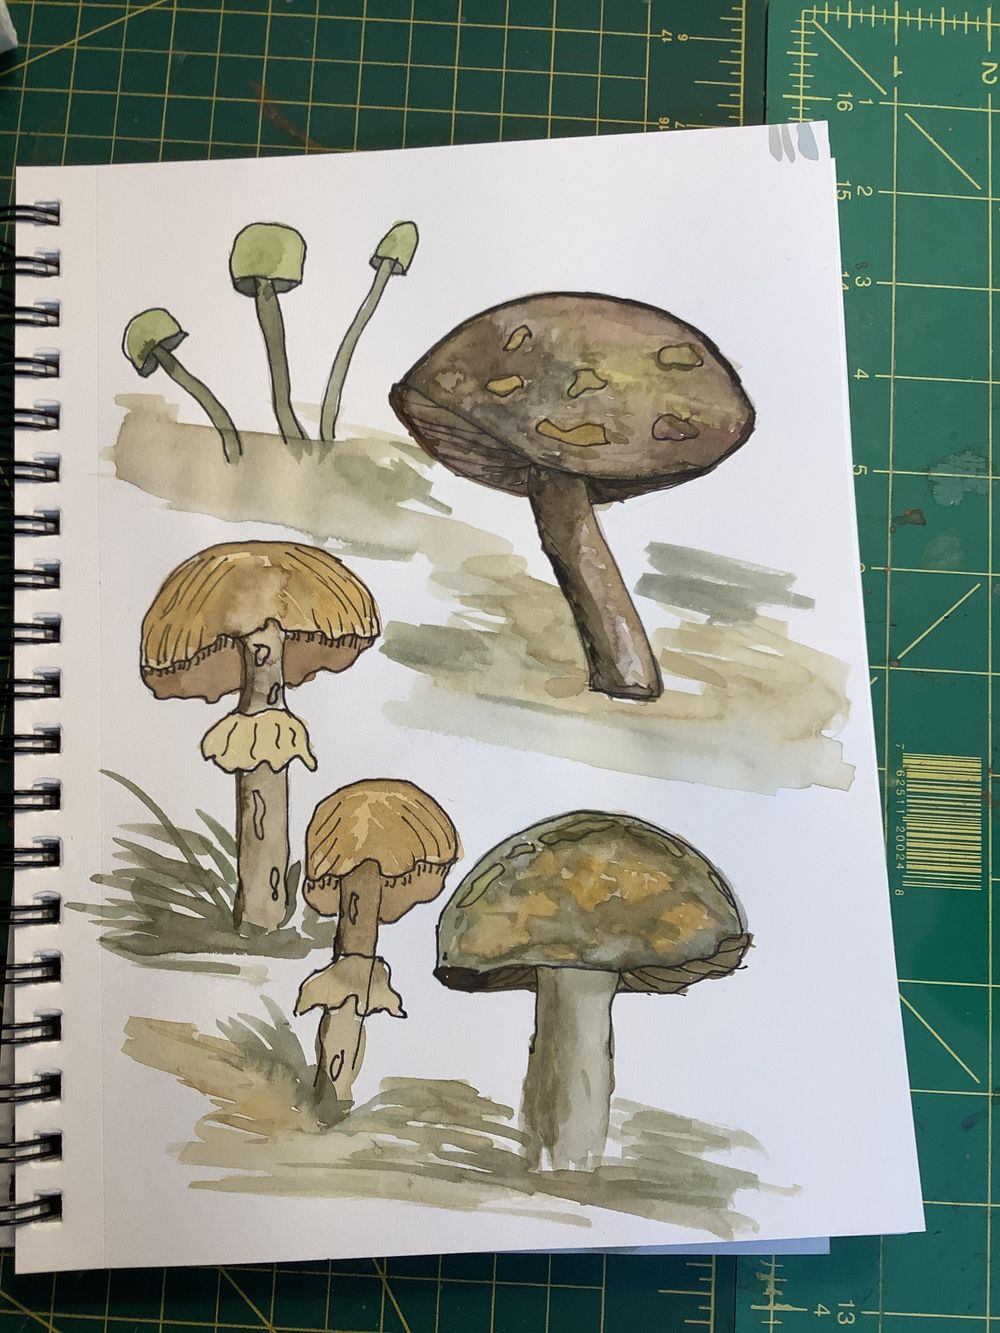 Funky mushrooms - image 2 - student project